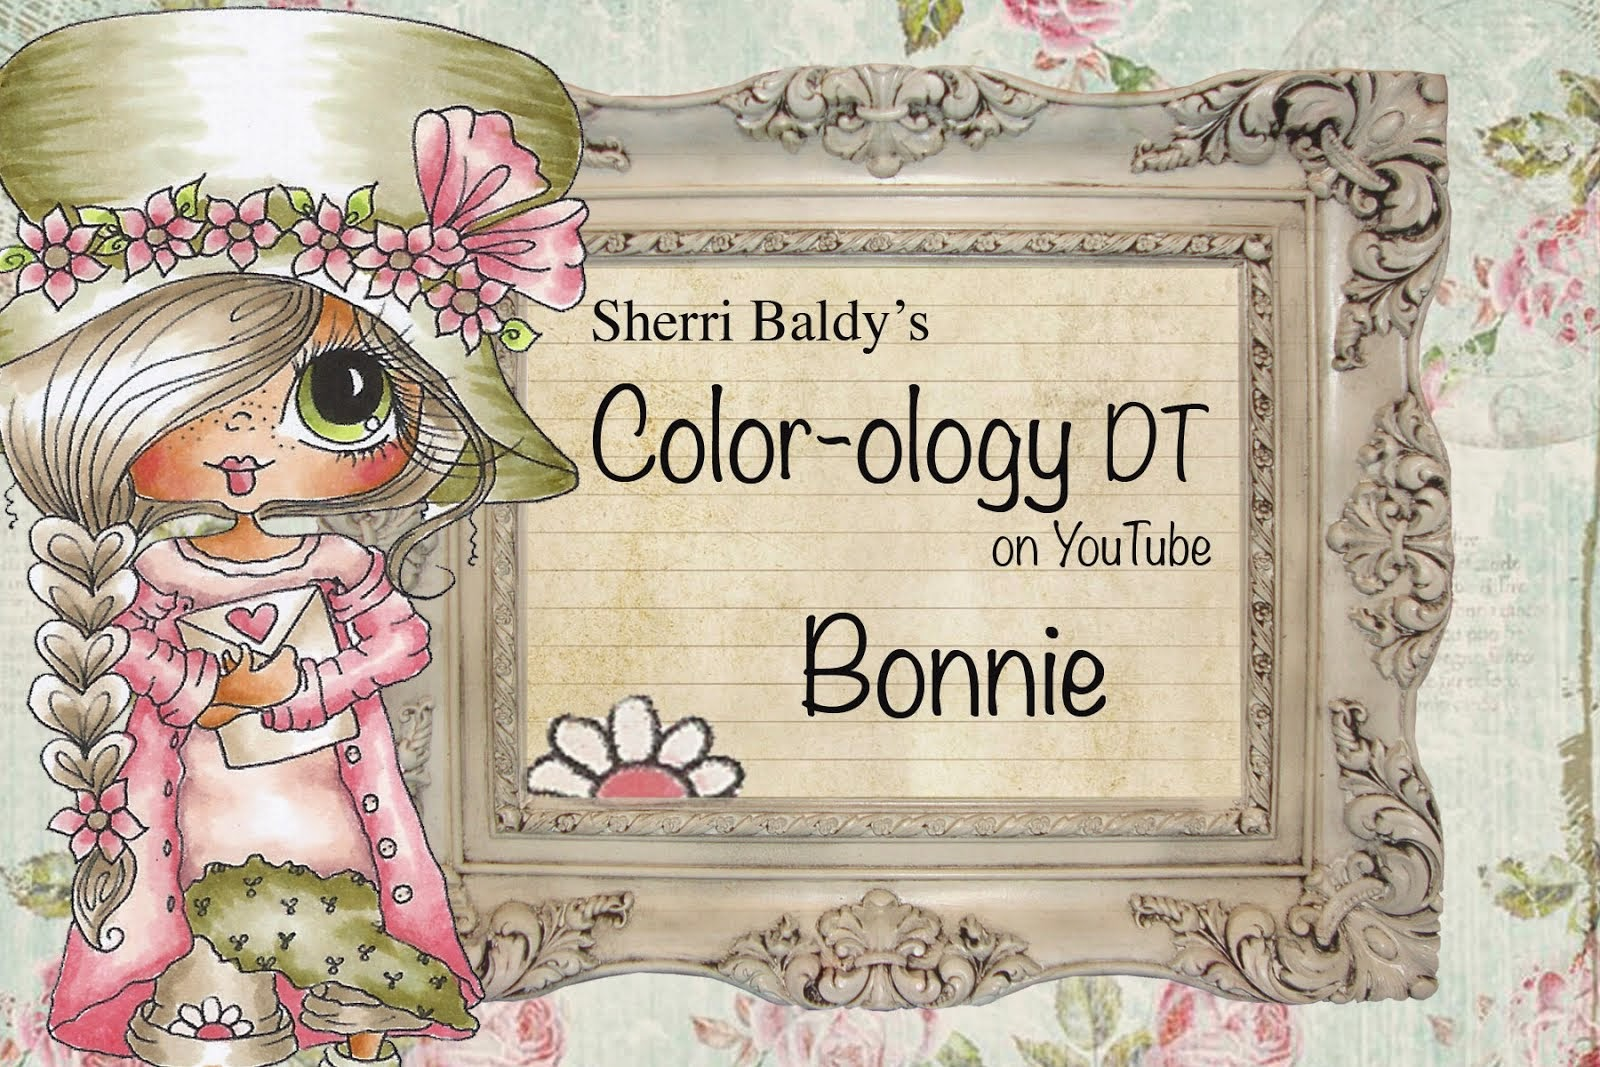 My Besties Color-ology DT on Sherri Baldy's Youtube Channel